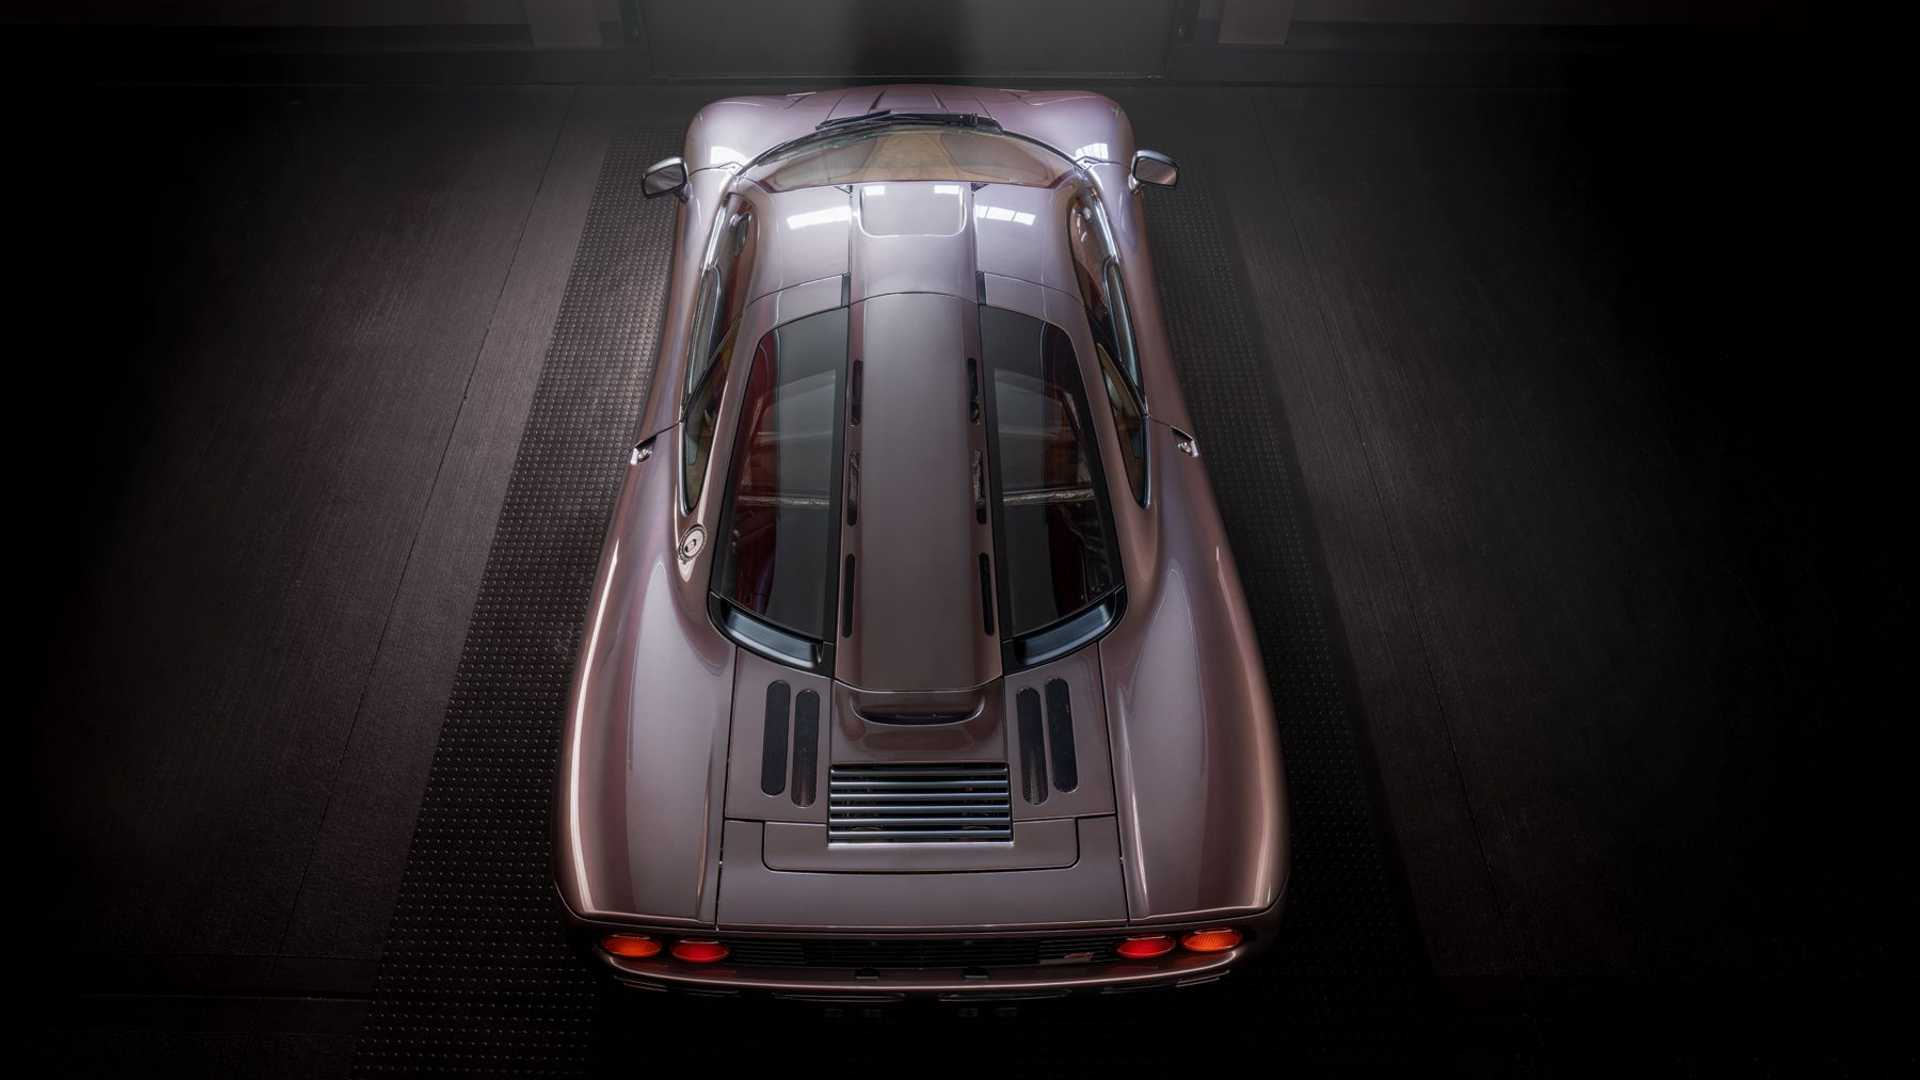 1995 McLaren F1 Gooding And Company Auction 2020 Roof Rear